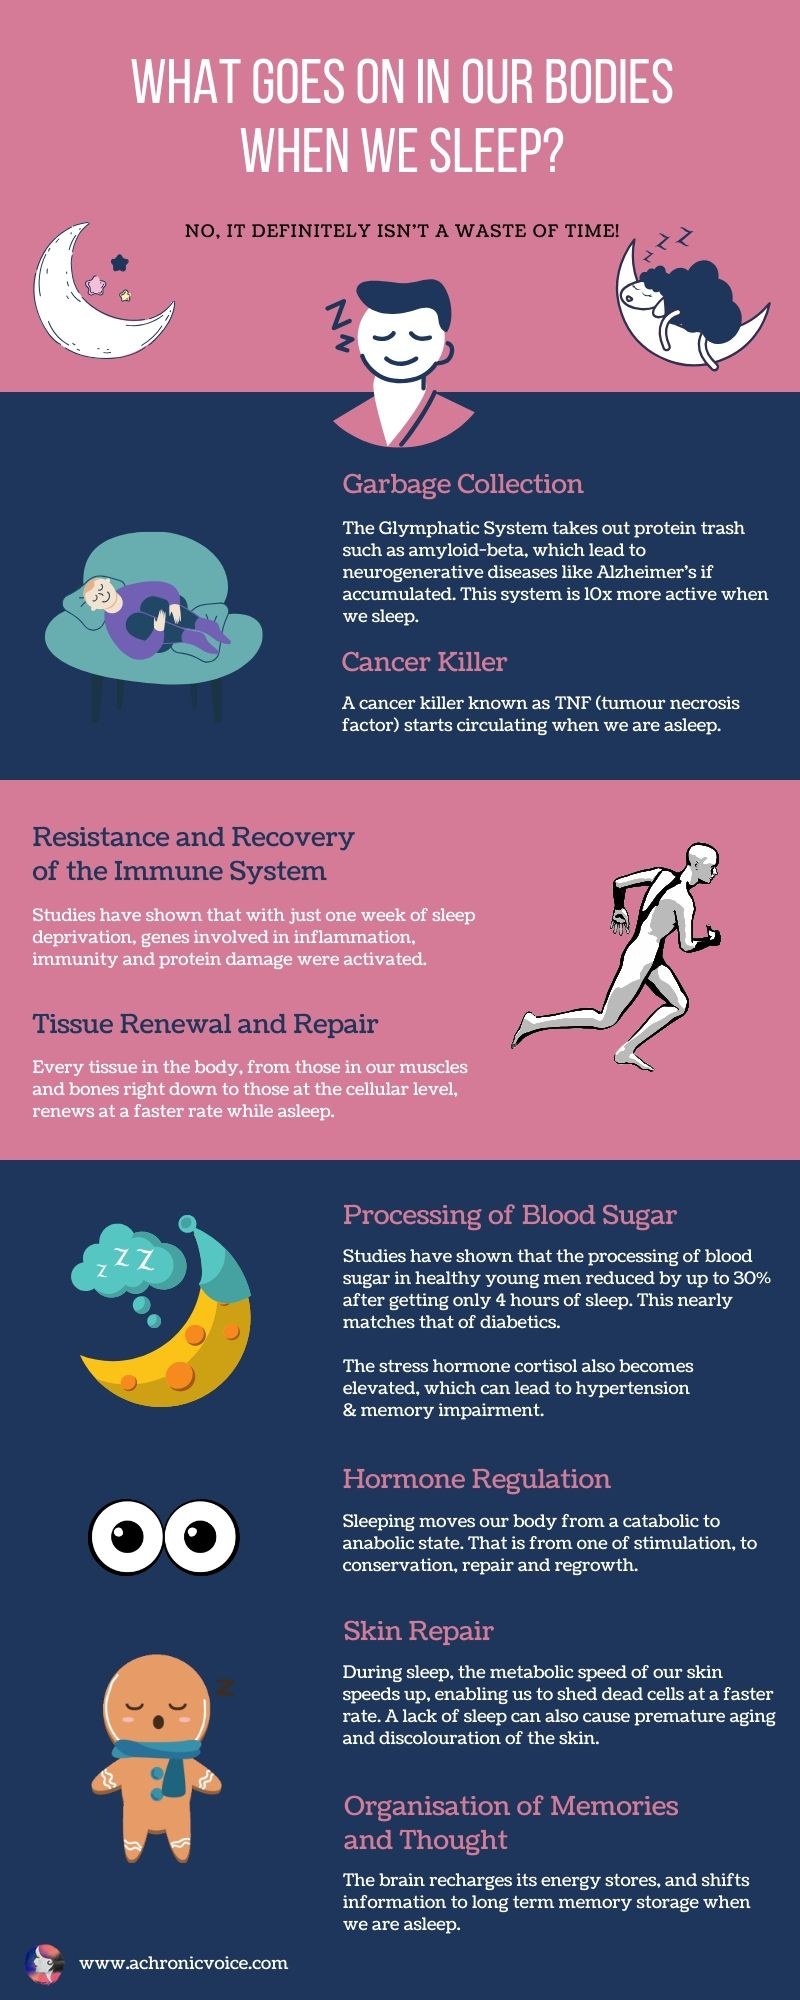 9 Things That Happen in Our Bodies When We Sleep Infographic